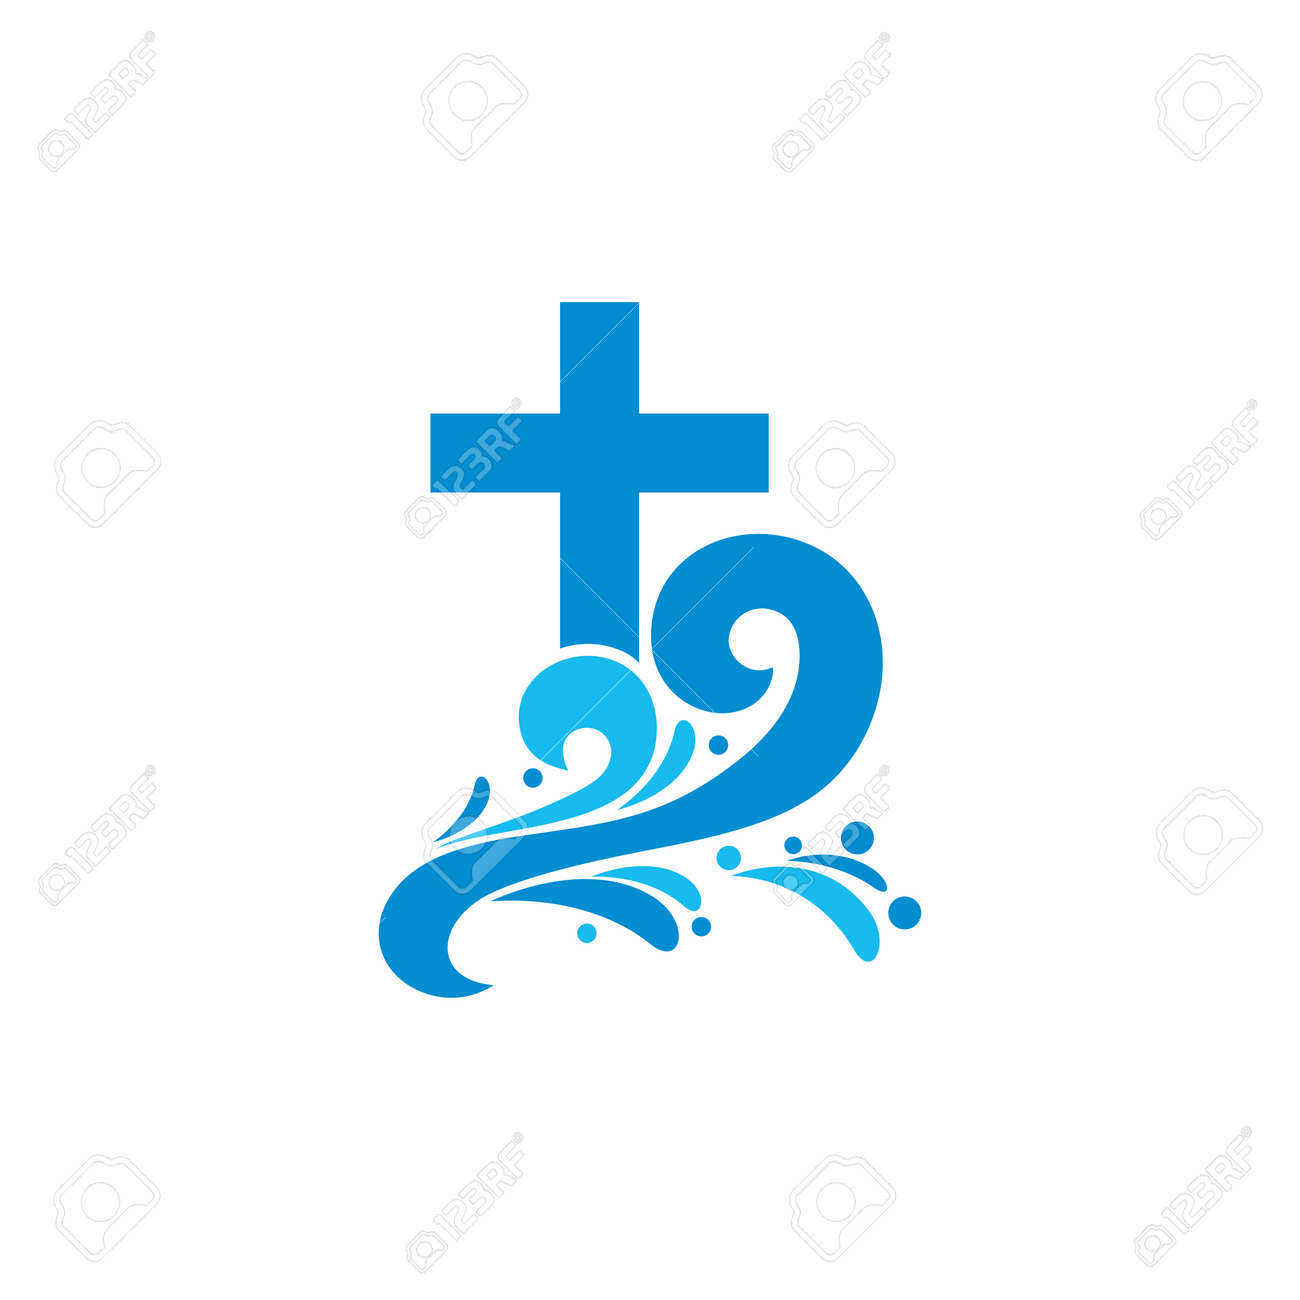 Logo church. Christian symbols. Cross and waves. Jesus - the source of living water. - 55152083